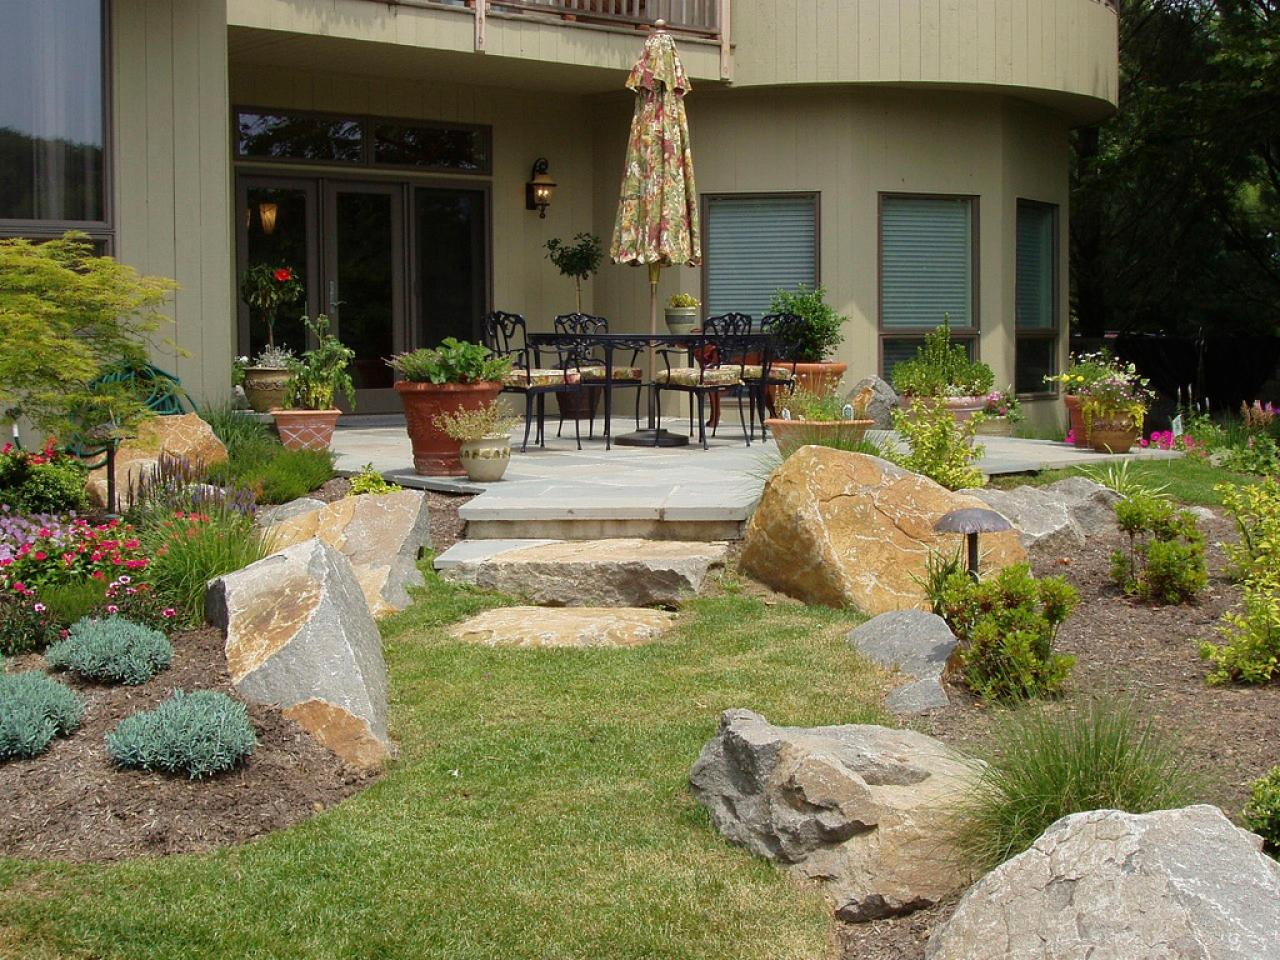 Patio landscaping ideas hgtv for Landscape garden design ideas